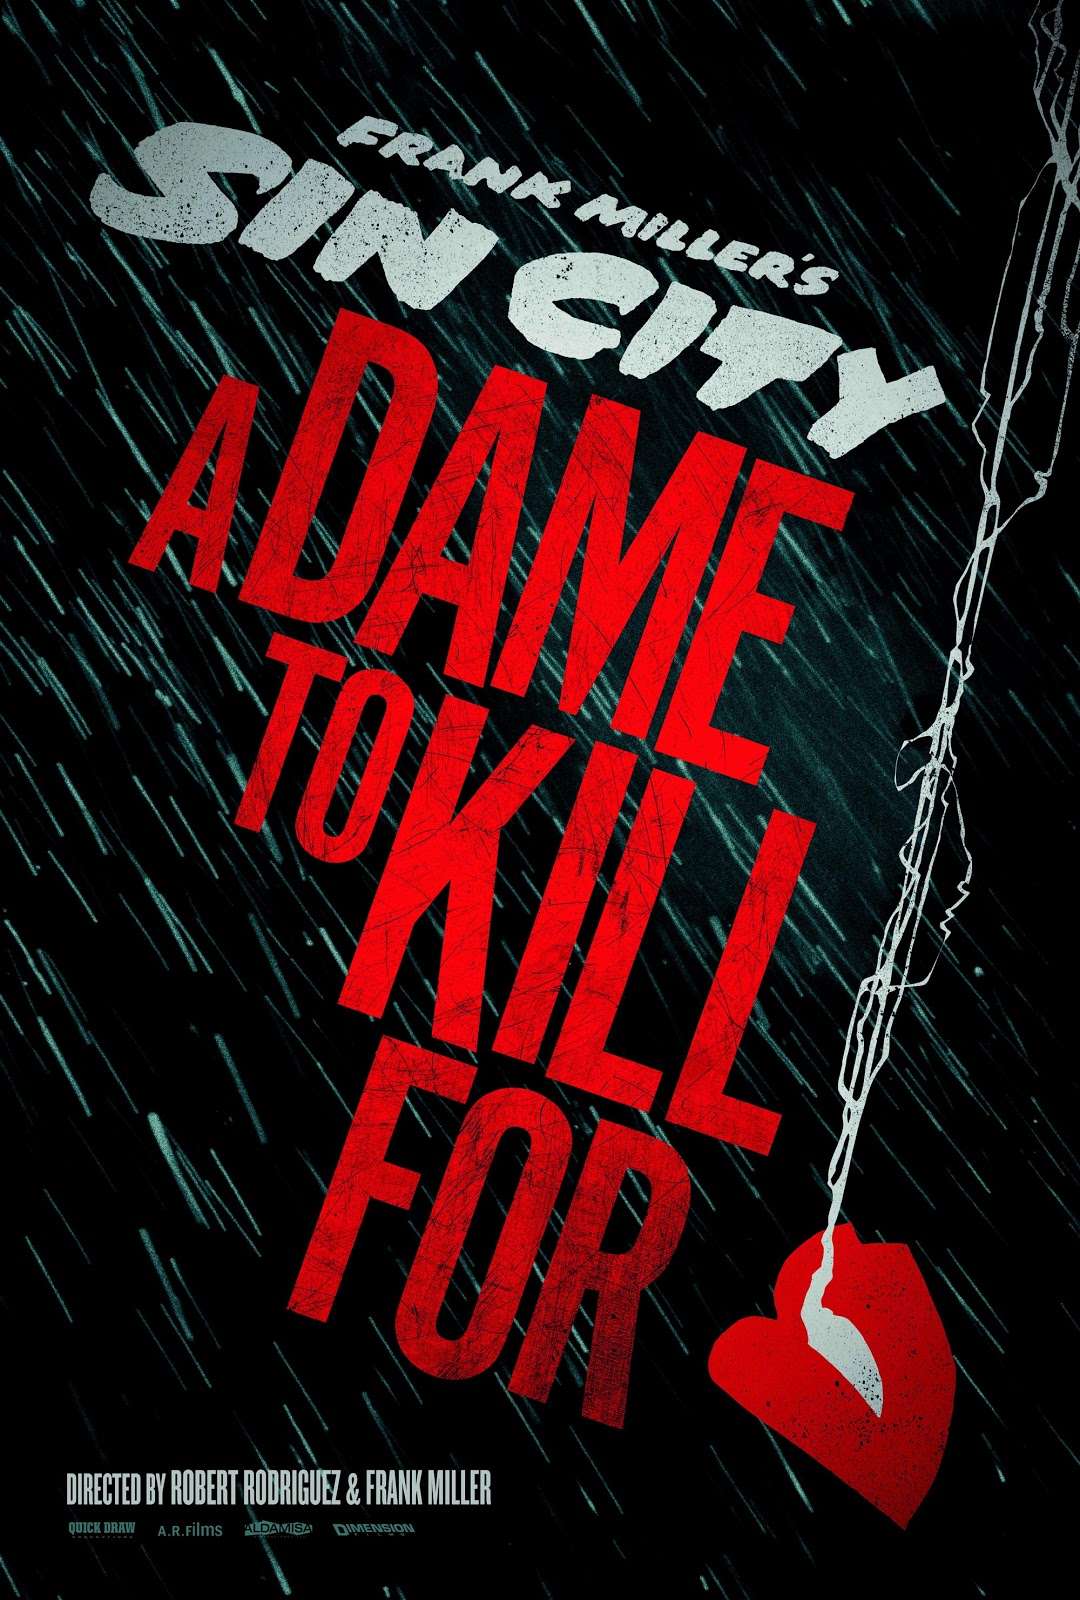 http://2.bp.blogspot.com/-aOGAfZ2sVgU/UOieSWHLqWI/AAAAAAAAD0Y/MDJWW2xG75w/s1600/Sin-City-A-Dame-to-Kill-For-Poster.jpg